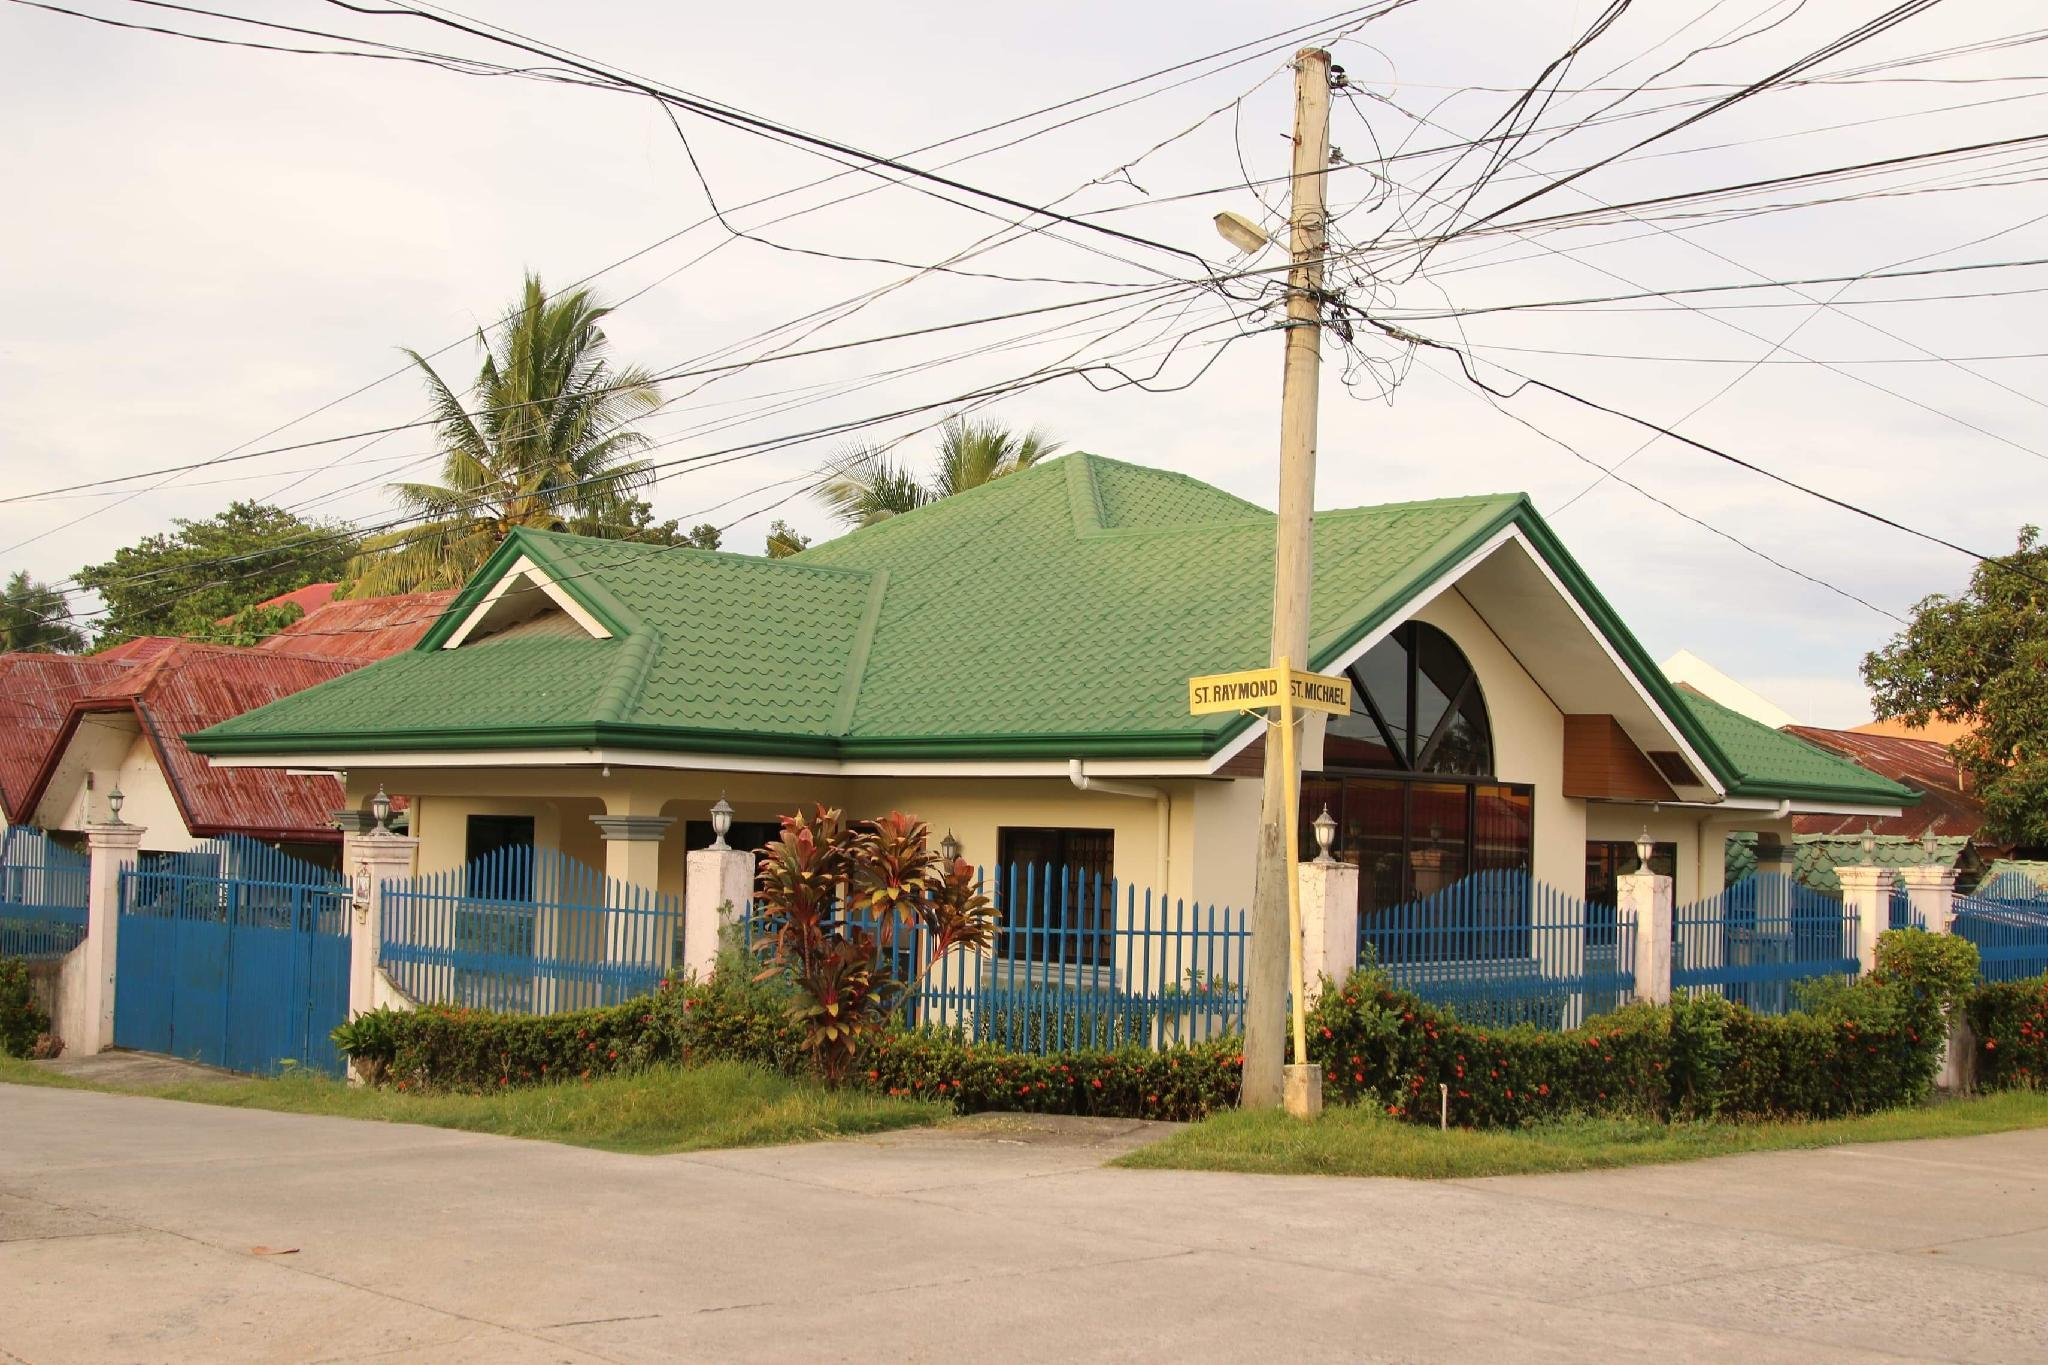 Coco's Residence